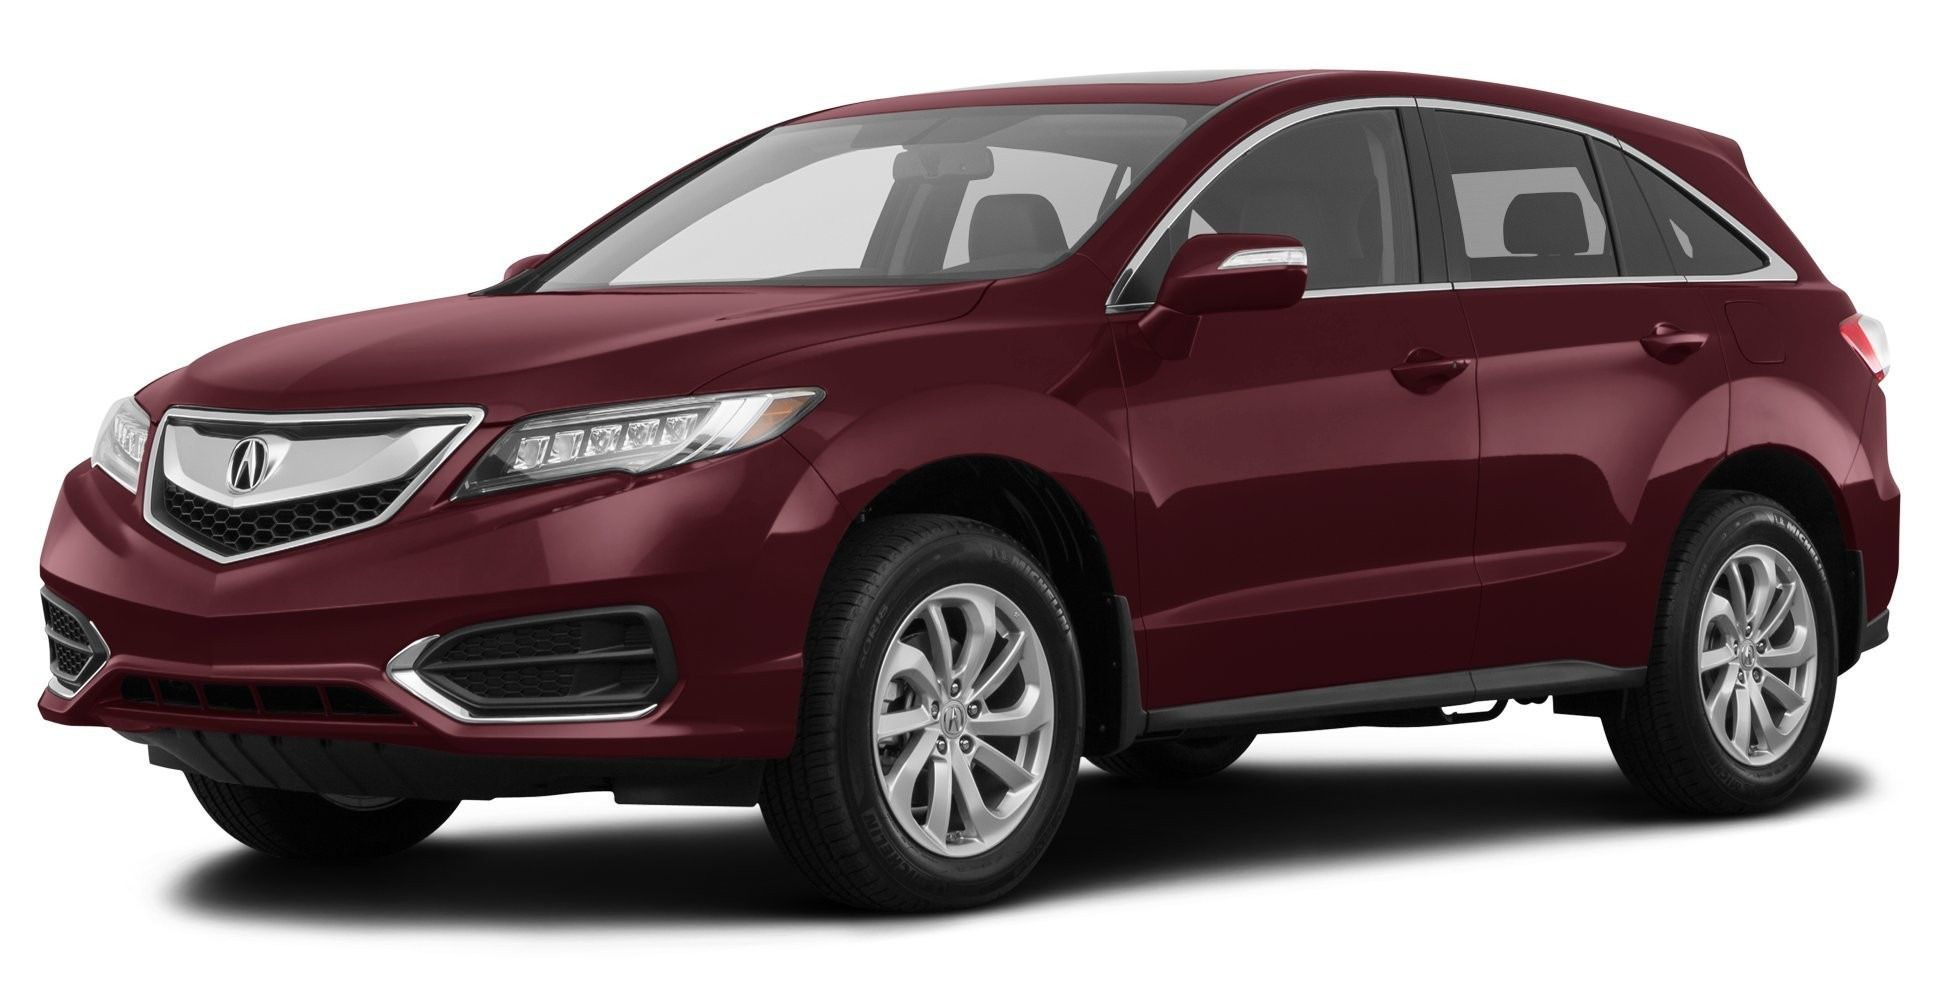 2019 Rdx Pricing